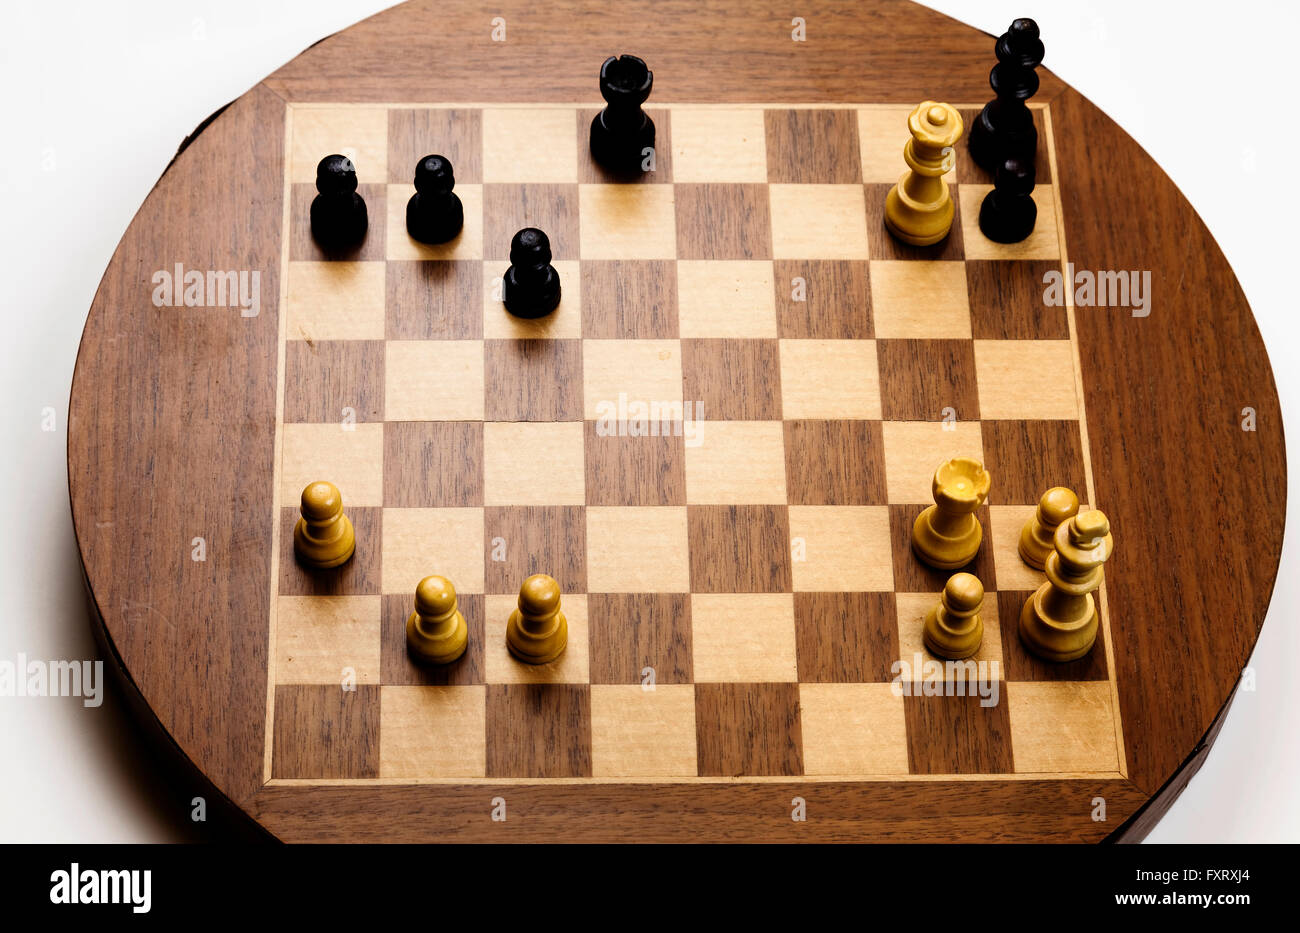 Checkmate Position On Old Magnetic Chess Board - Stock Image